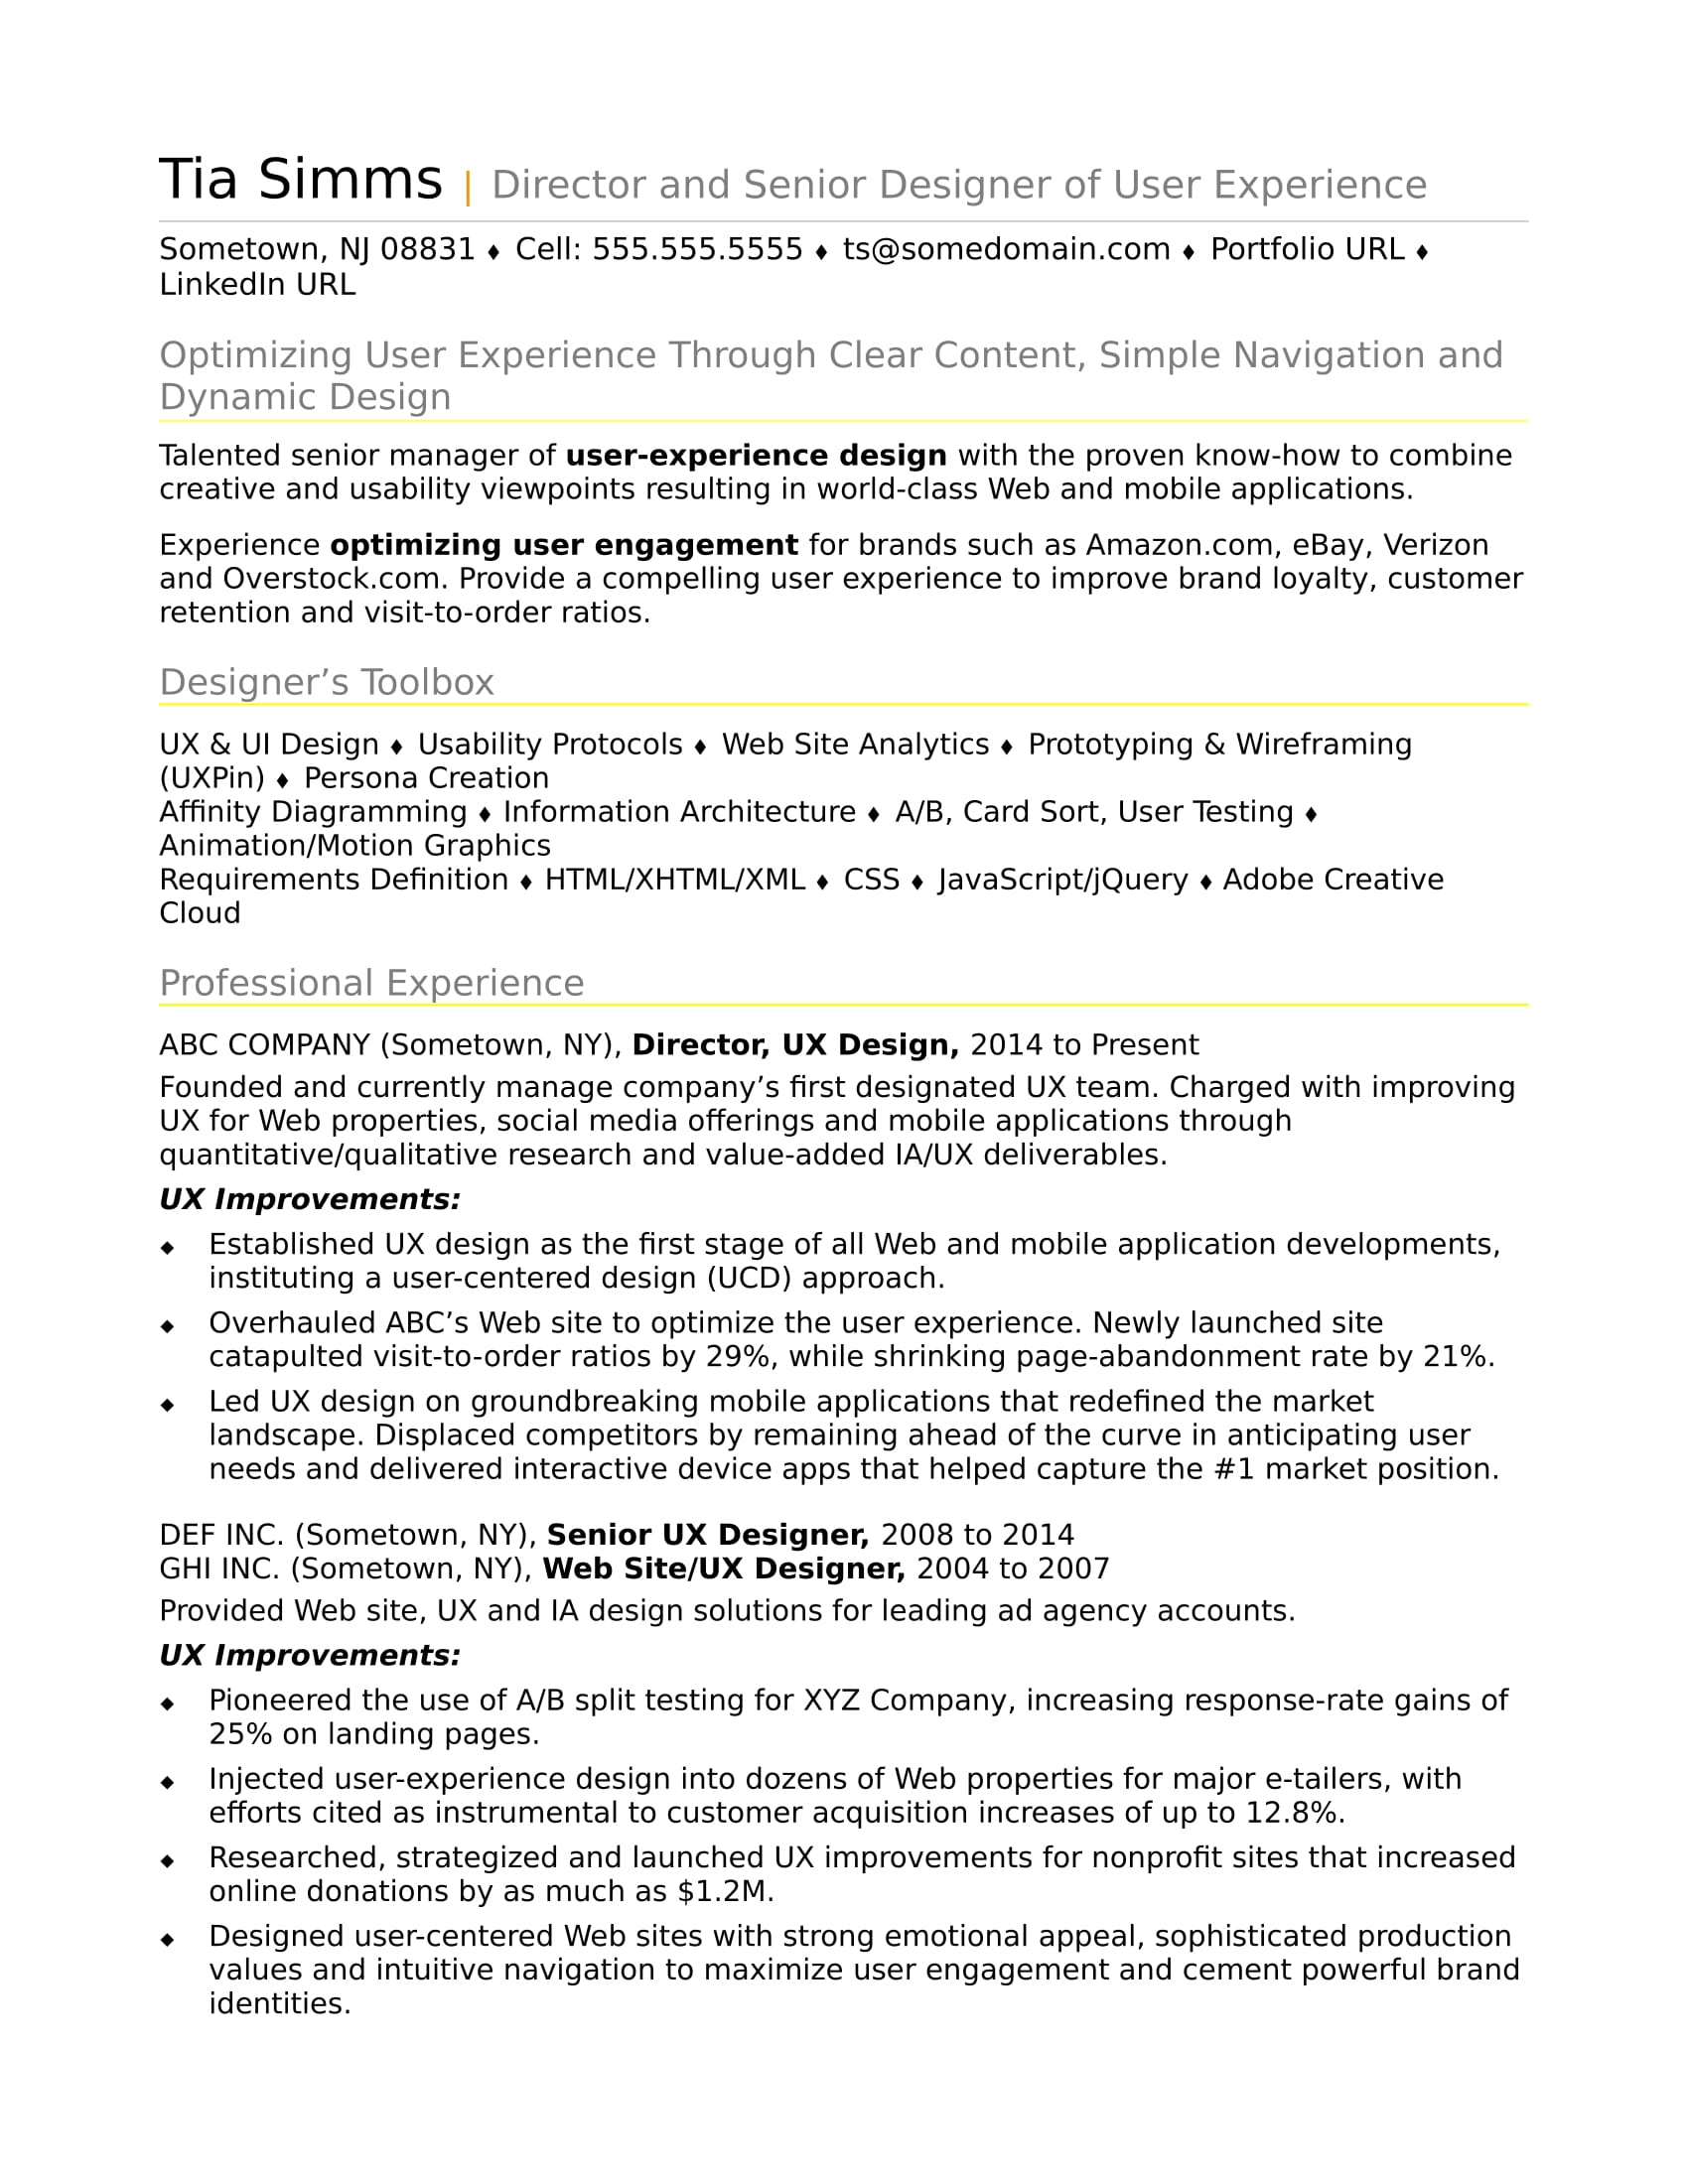 sample resume for an experienced ux designer - Sample Resume With Research Experience